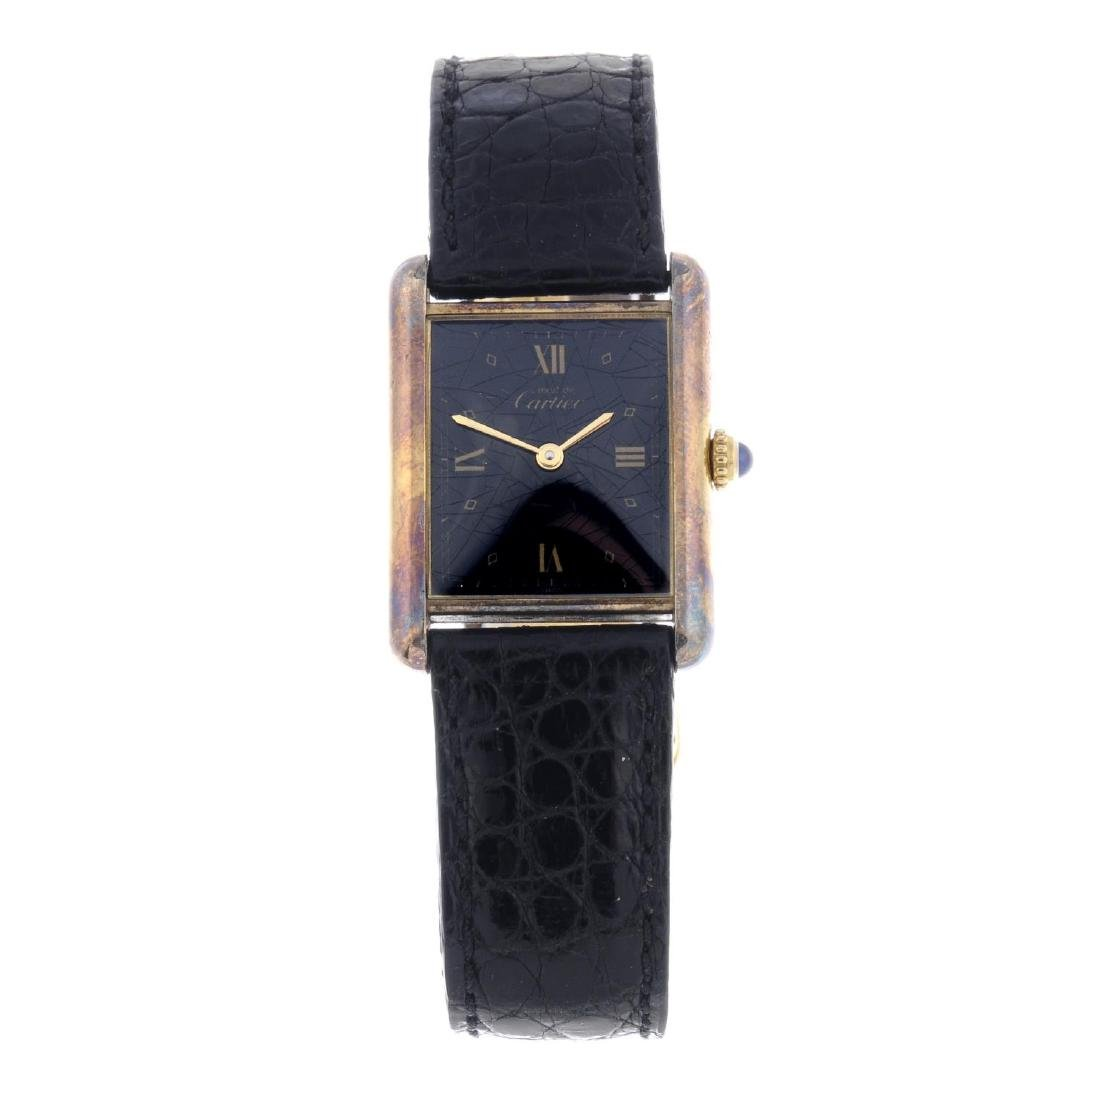 CARTIER - a Must De Cartier Vermeil wrist watch. Gold